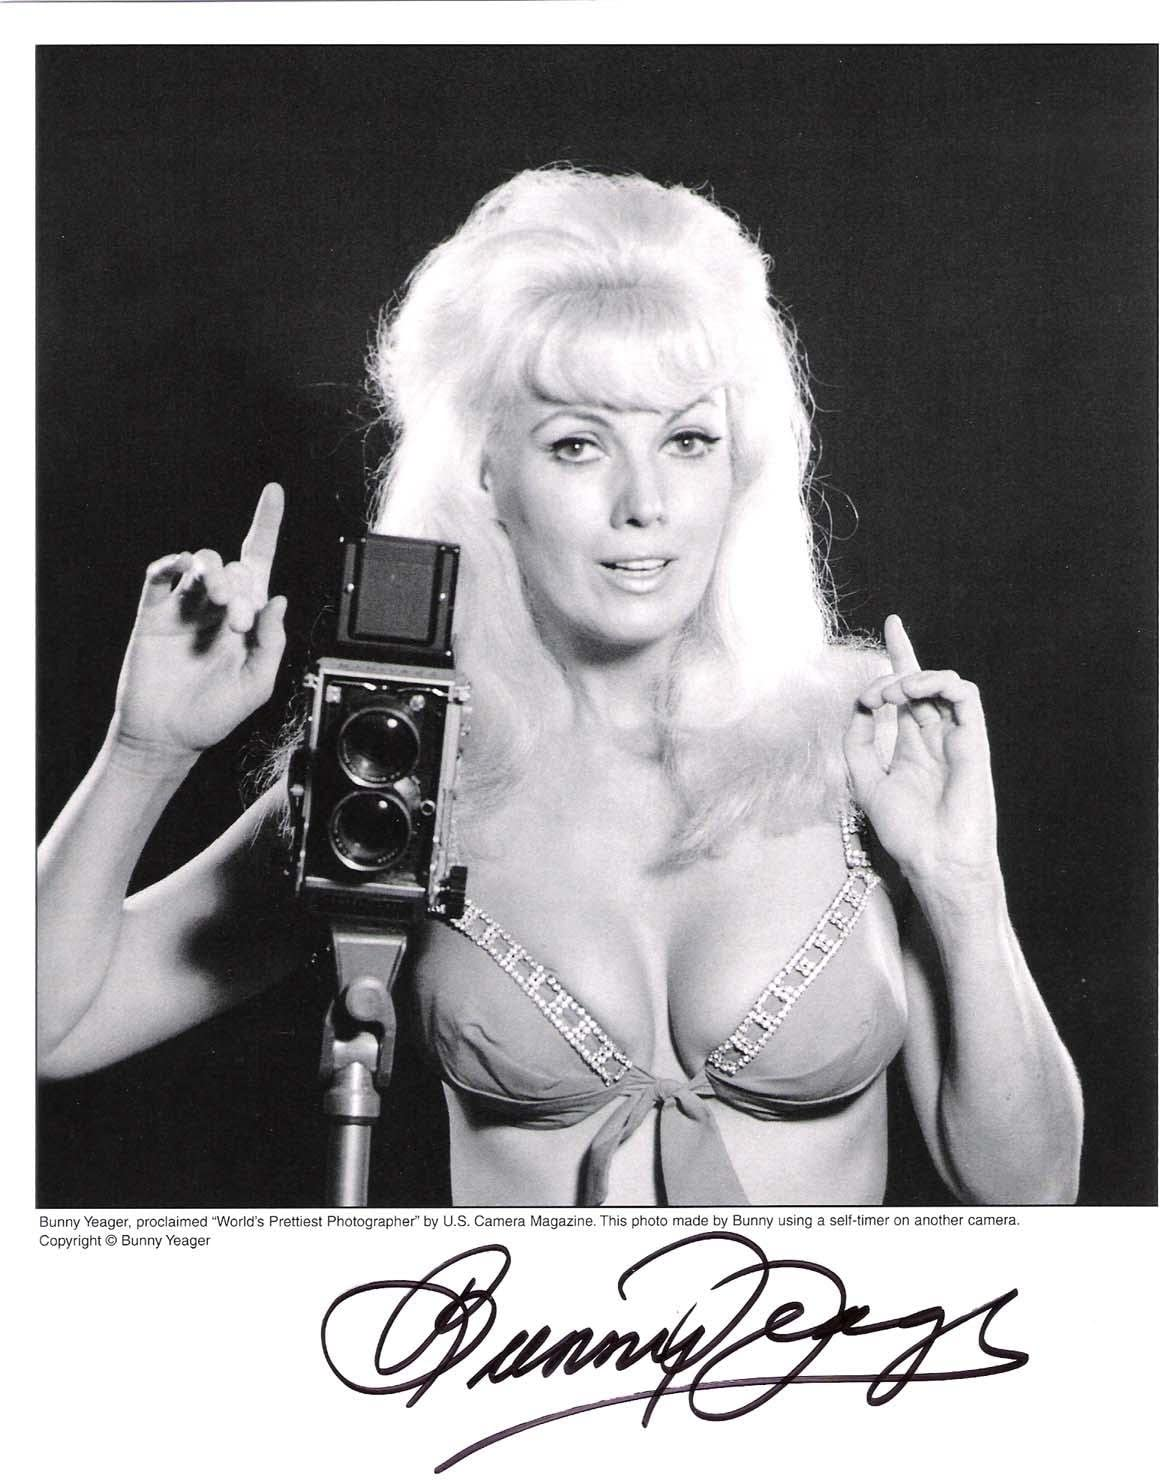 """BUNNY YEAGER -Proclaimed""""WORLD'S PRETTIEST PHOTOGRAPHER"""" by U.S. CAMERA  MAGAZINE Signed 8x10B/W Photo - TV Magazines at Amazon's Entertainment  Collectibles Store"""